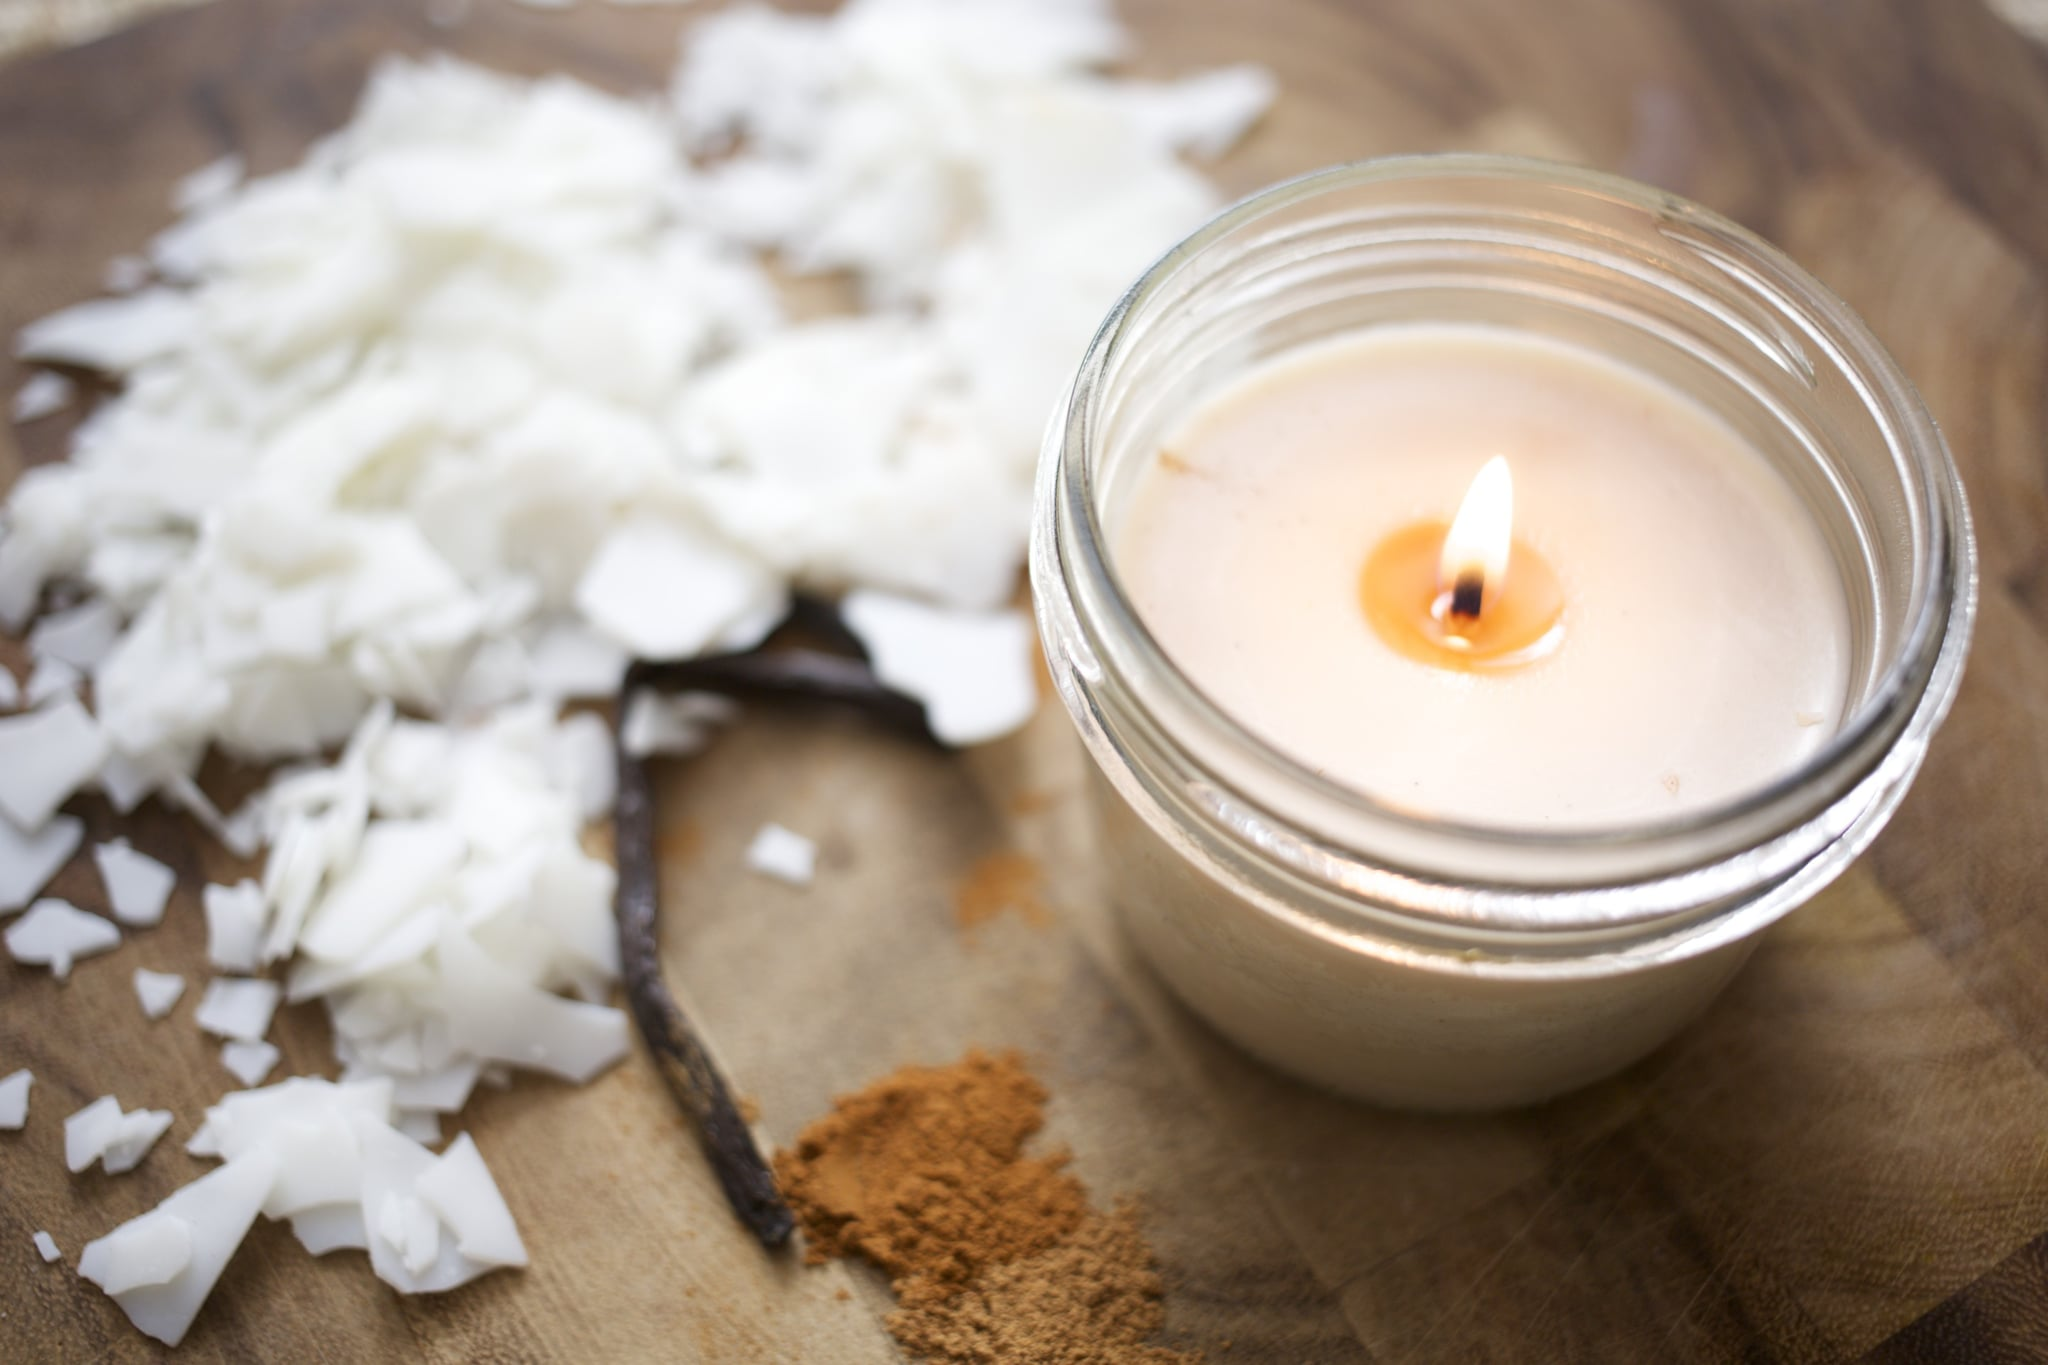 Diy Fall Candles Popsugar Smart Living Natural Soy Wax Scented Cinnamon Vanilla Made From Ingredients The Fragrance Of These Will Be Much Less